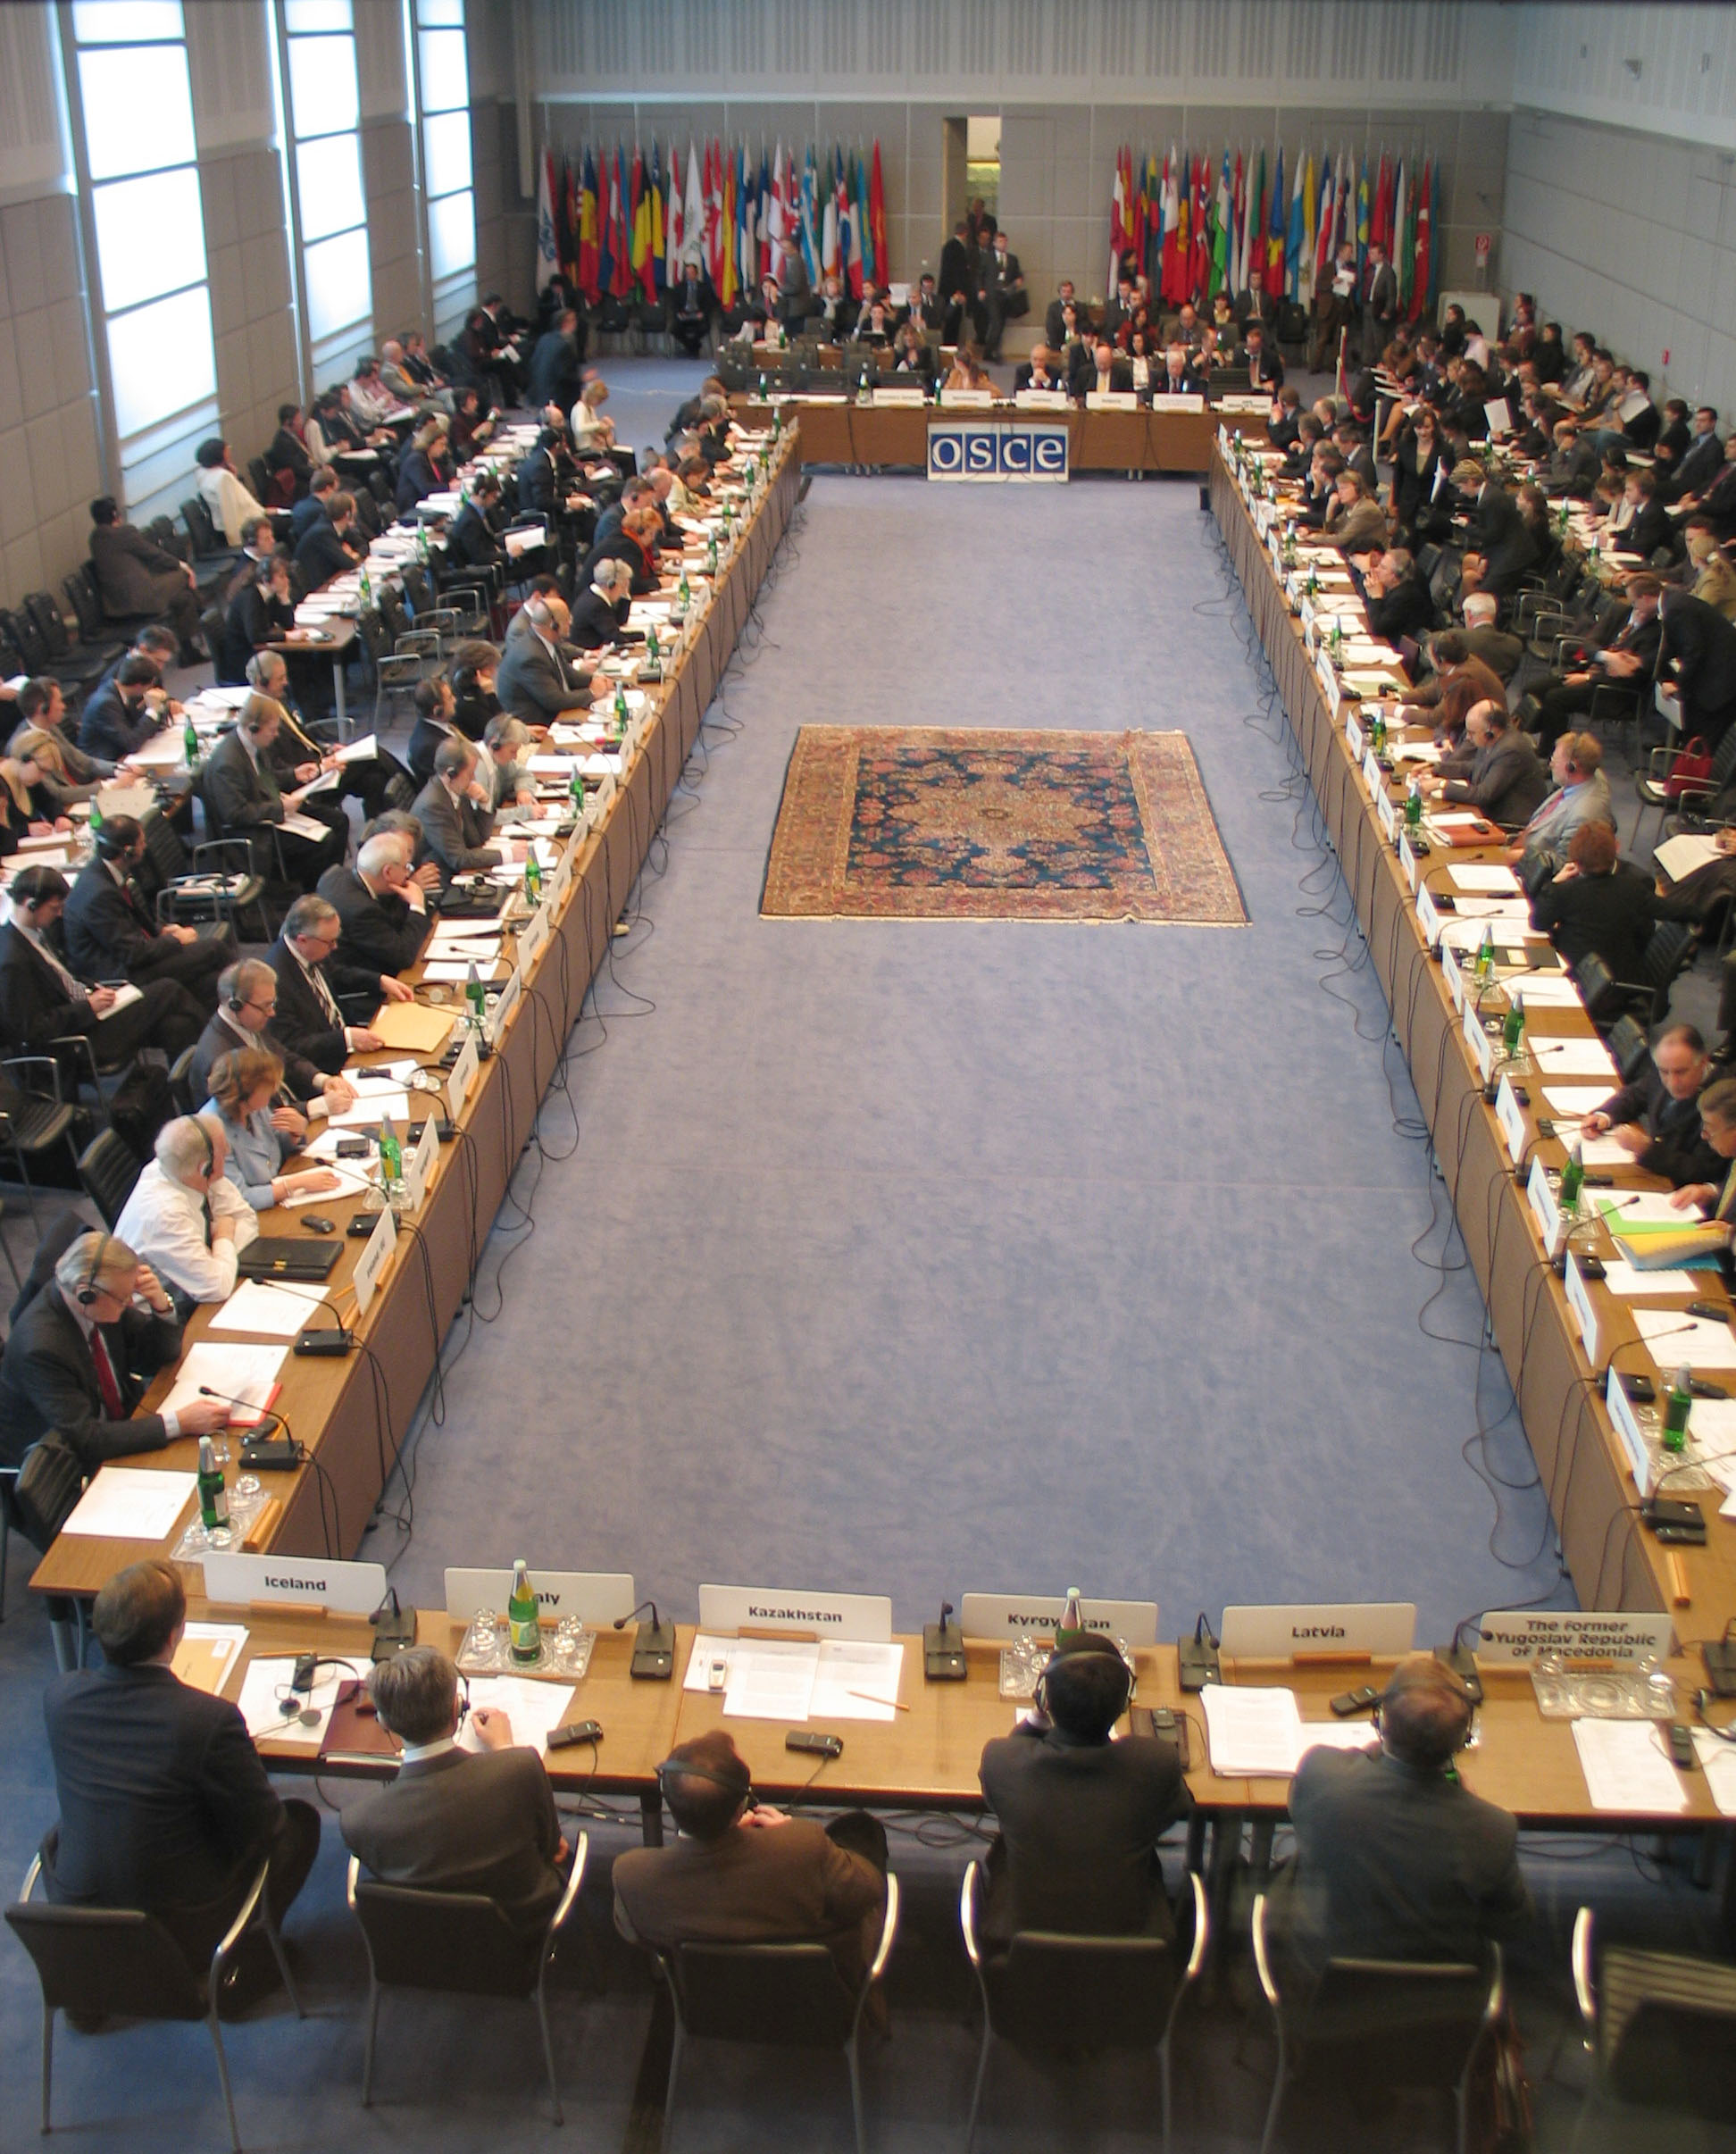 http://upload.wikimedia.org/wikipedia/commons/7/7f/OSCE-Permanent_Council.JPG